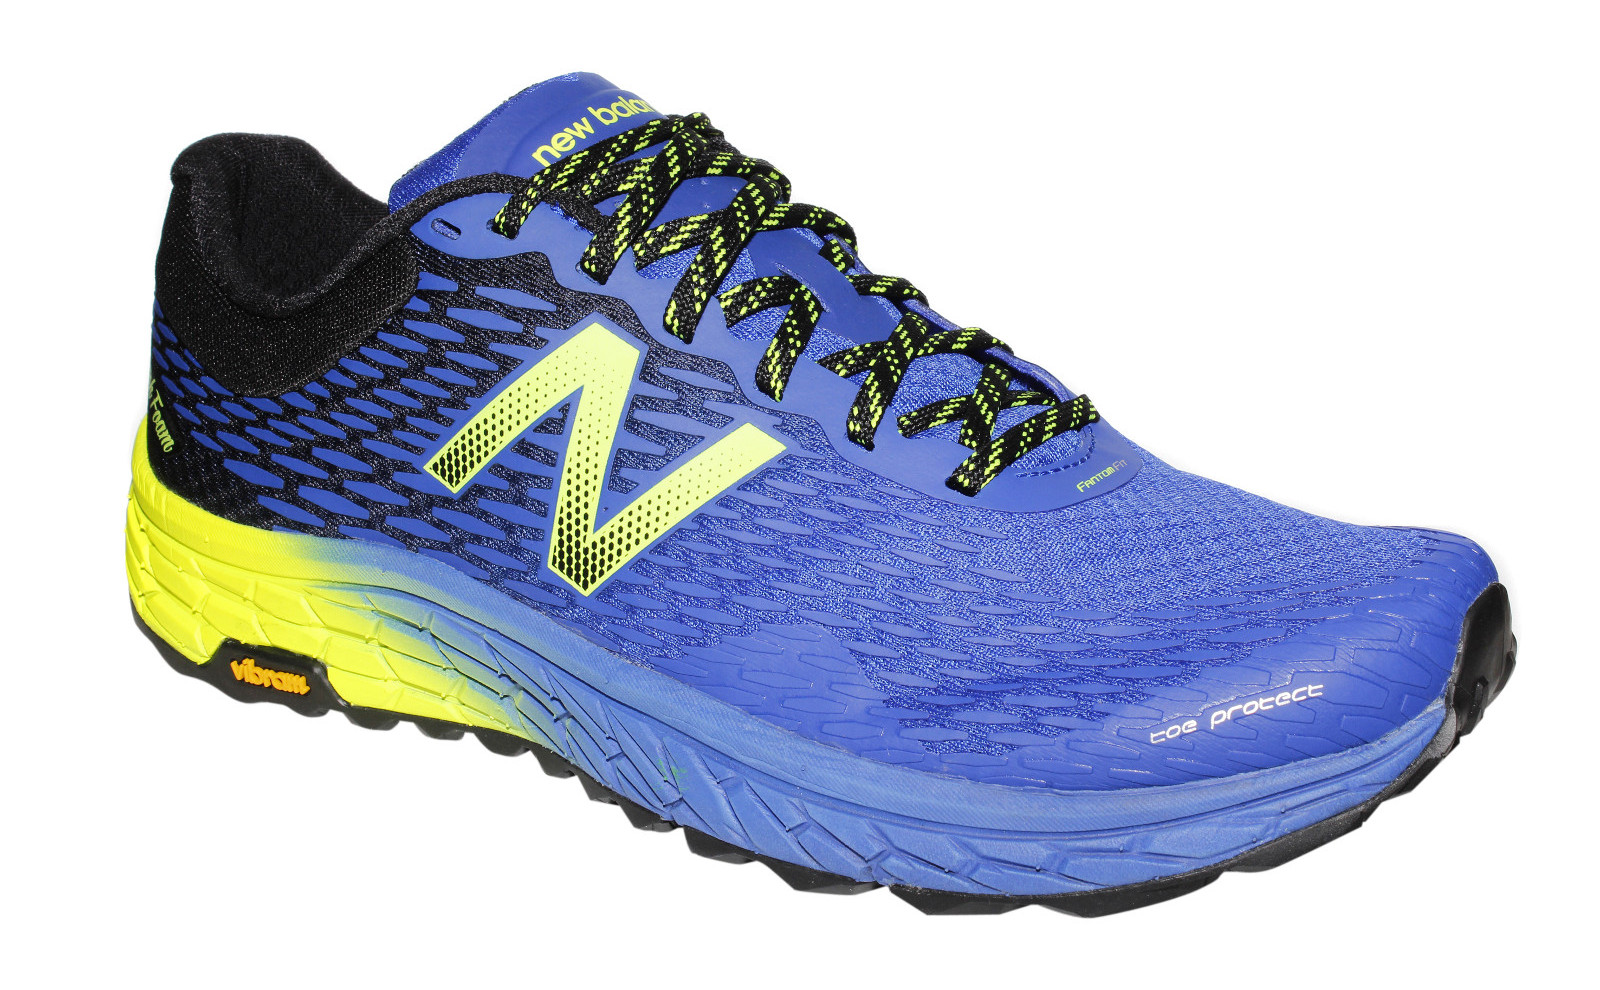 NEW BALANCE HIERRO V2 Powered by Vibram® MEGAGRIP e455ea4823d